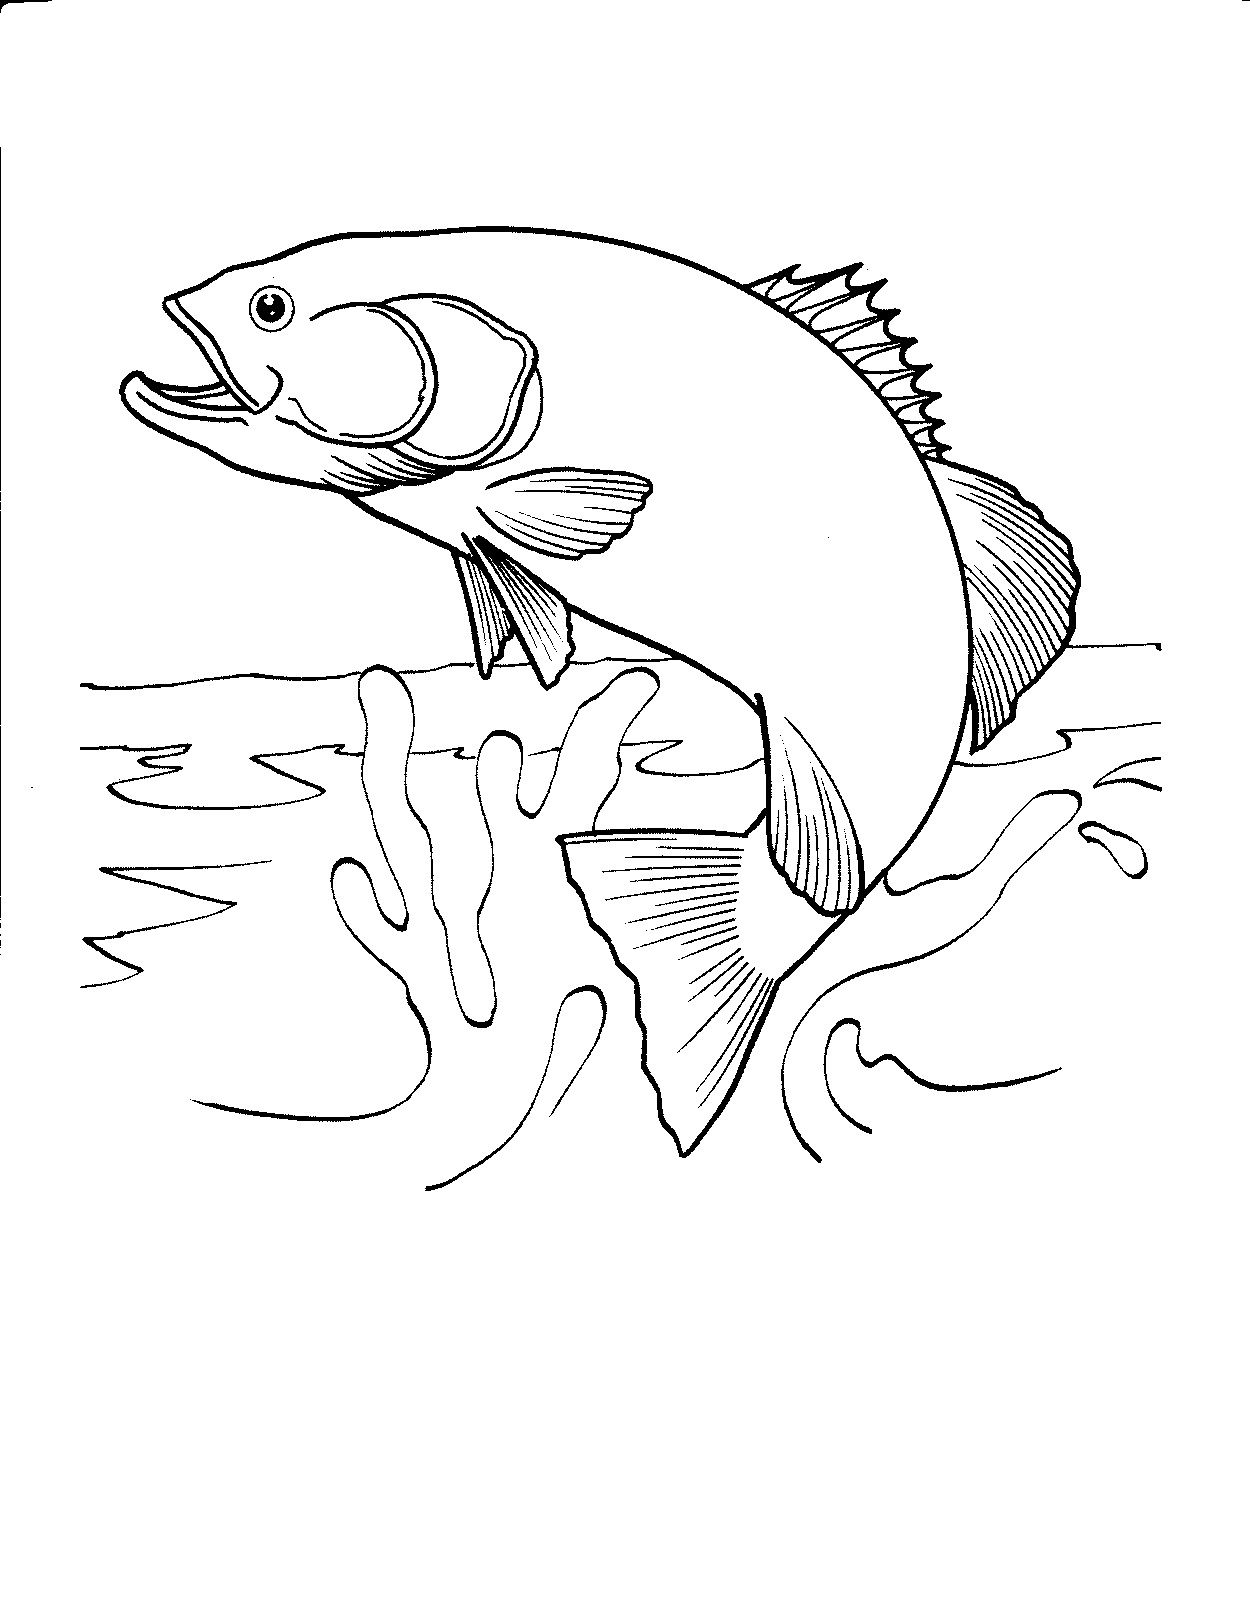 fish coloring pages for kids - photo#36